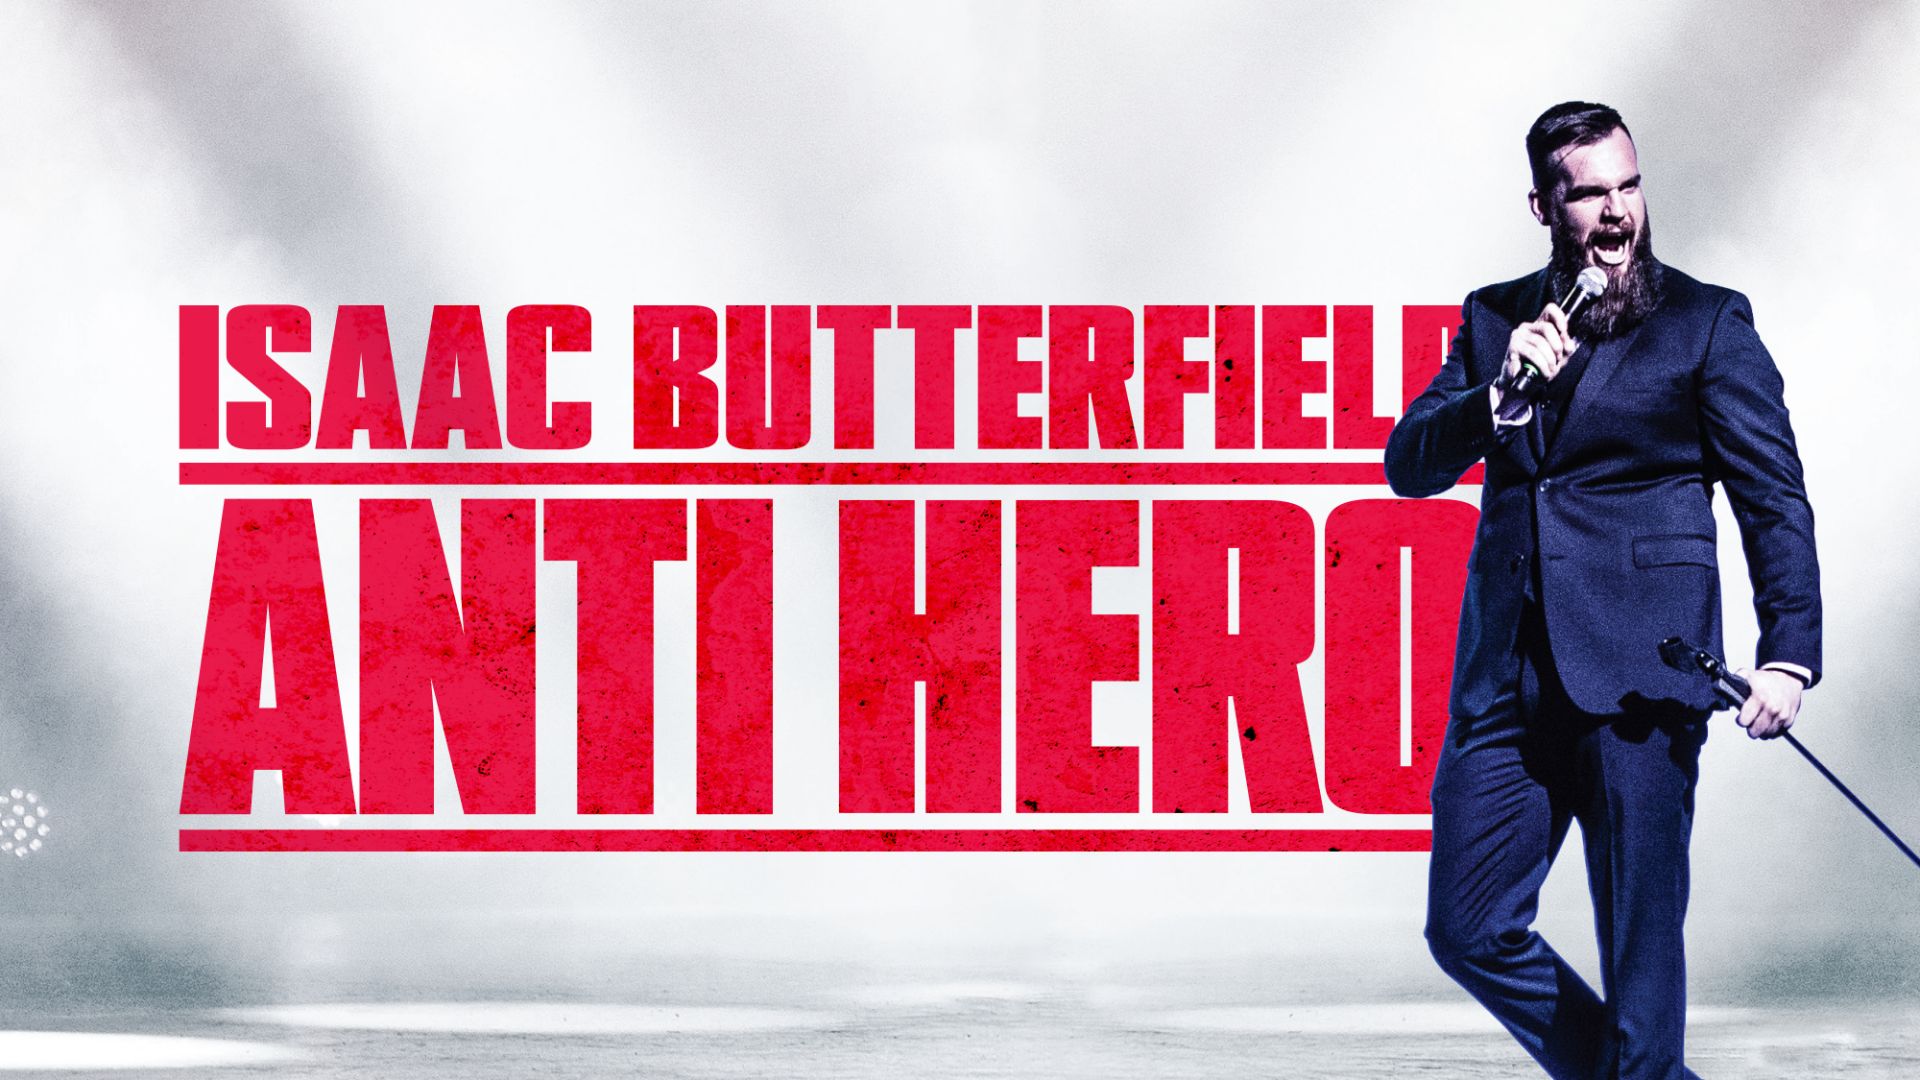 Isaac Butterfield: Anti Hero